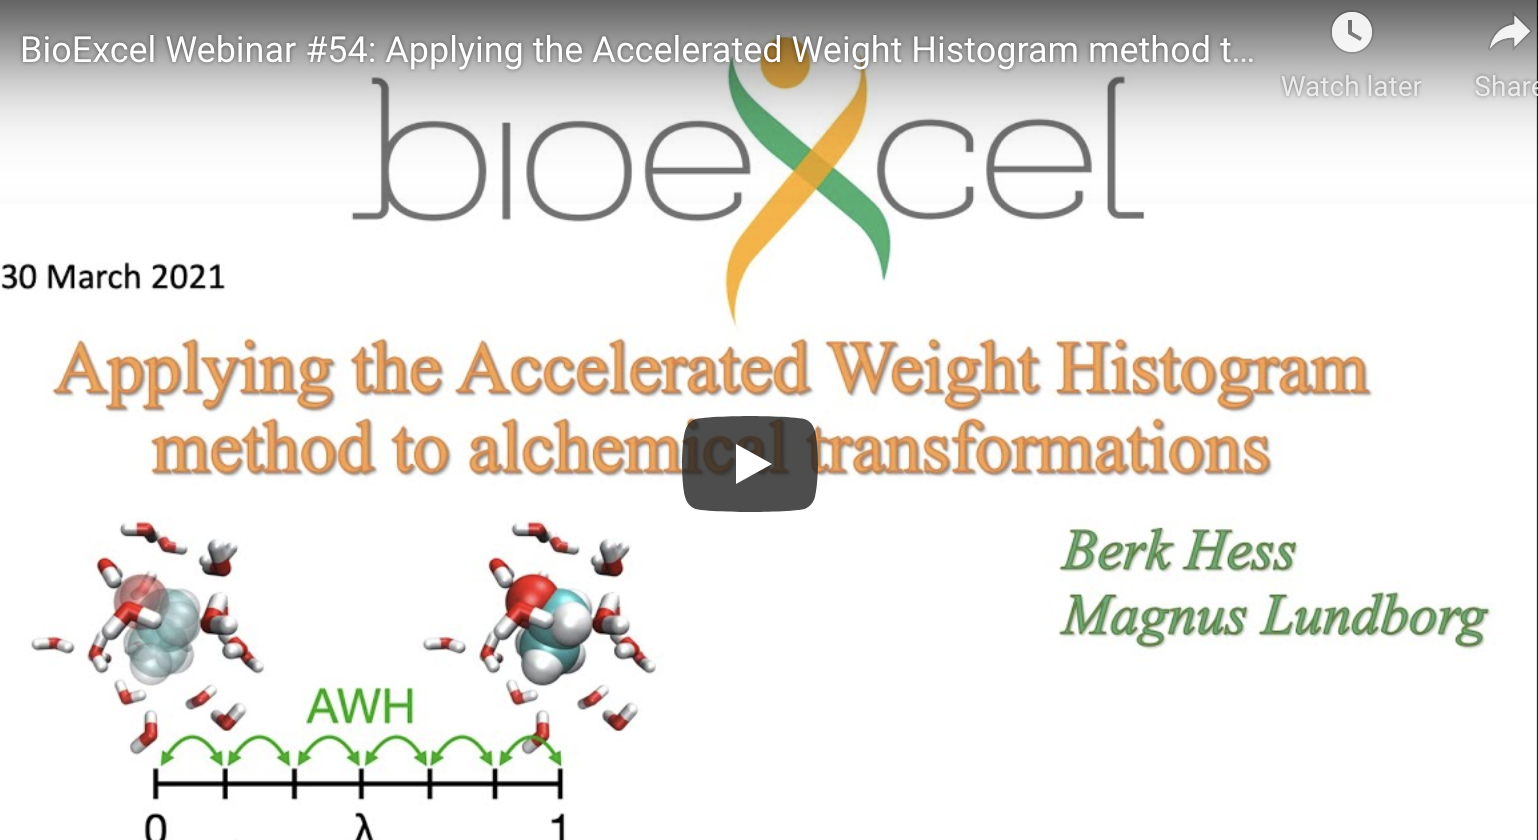 BioExcel webinar titled Applying the accelerated weight histogram method to alchemical transformations by berk hess and magnus lundborg